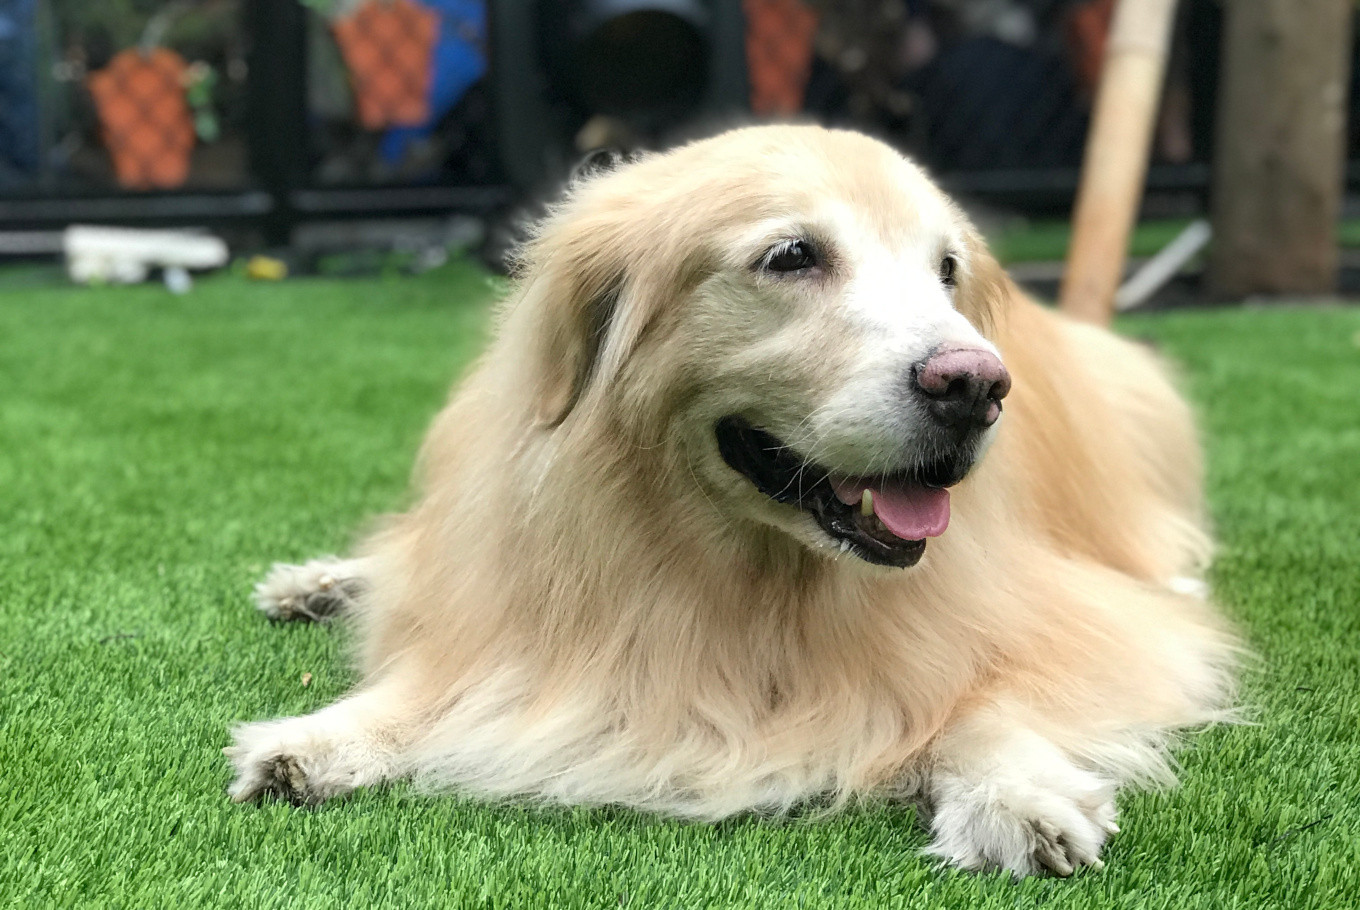 New dog park Paws caters to Kelapa Gading shoppers